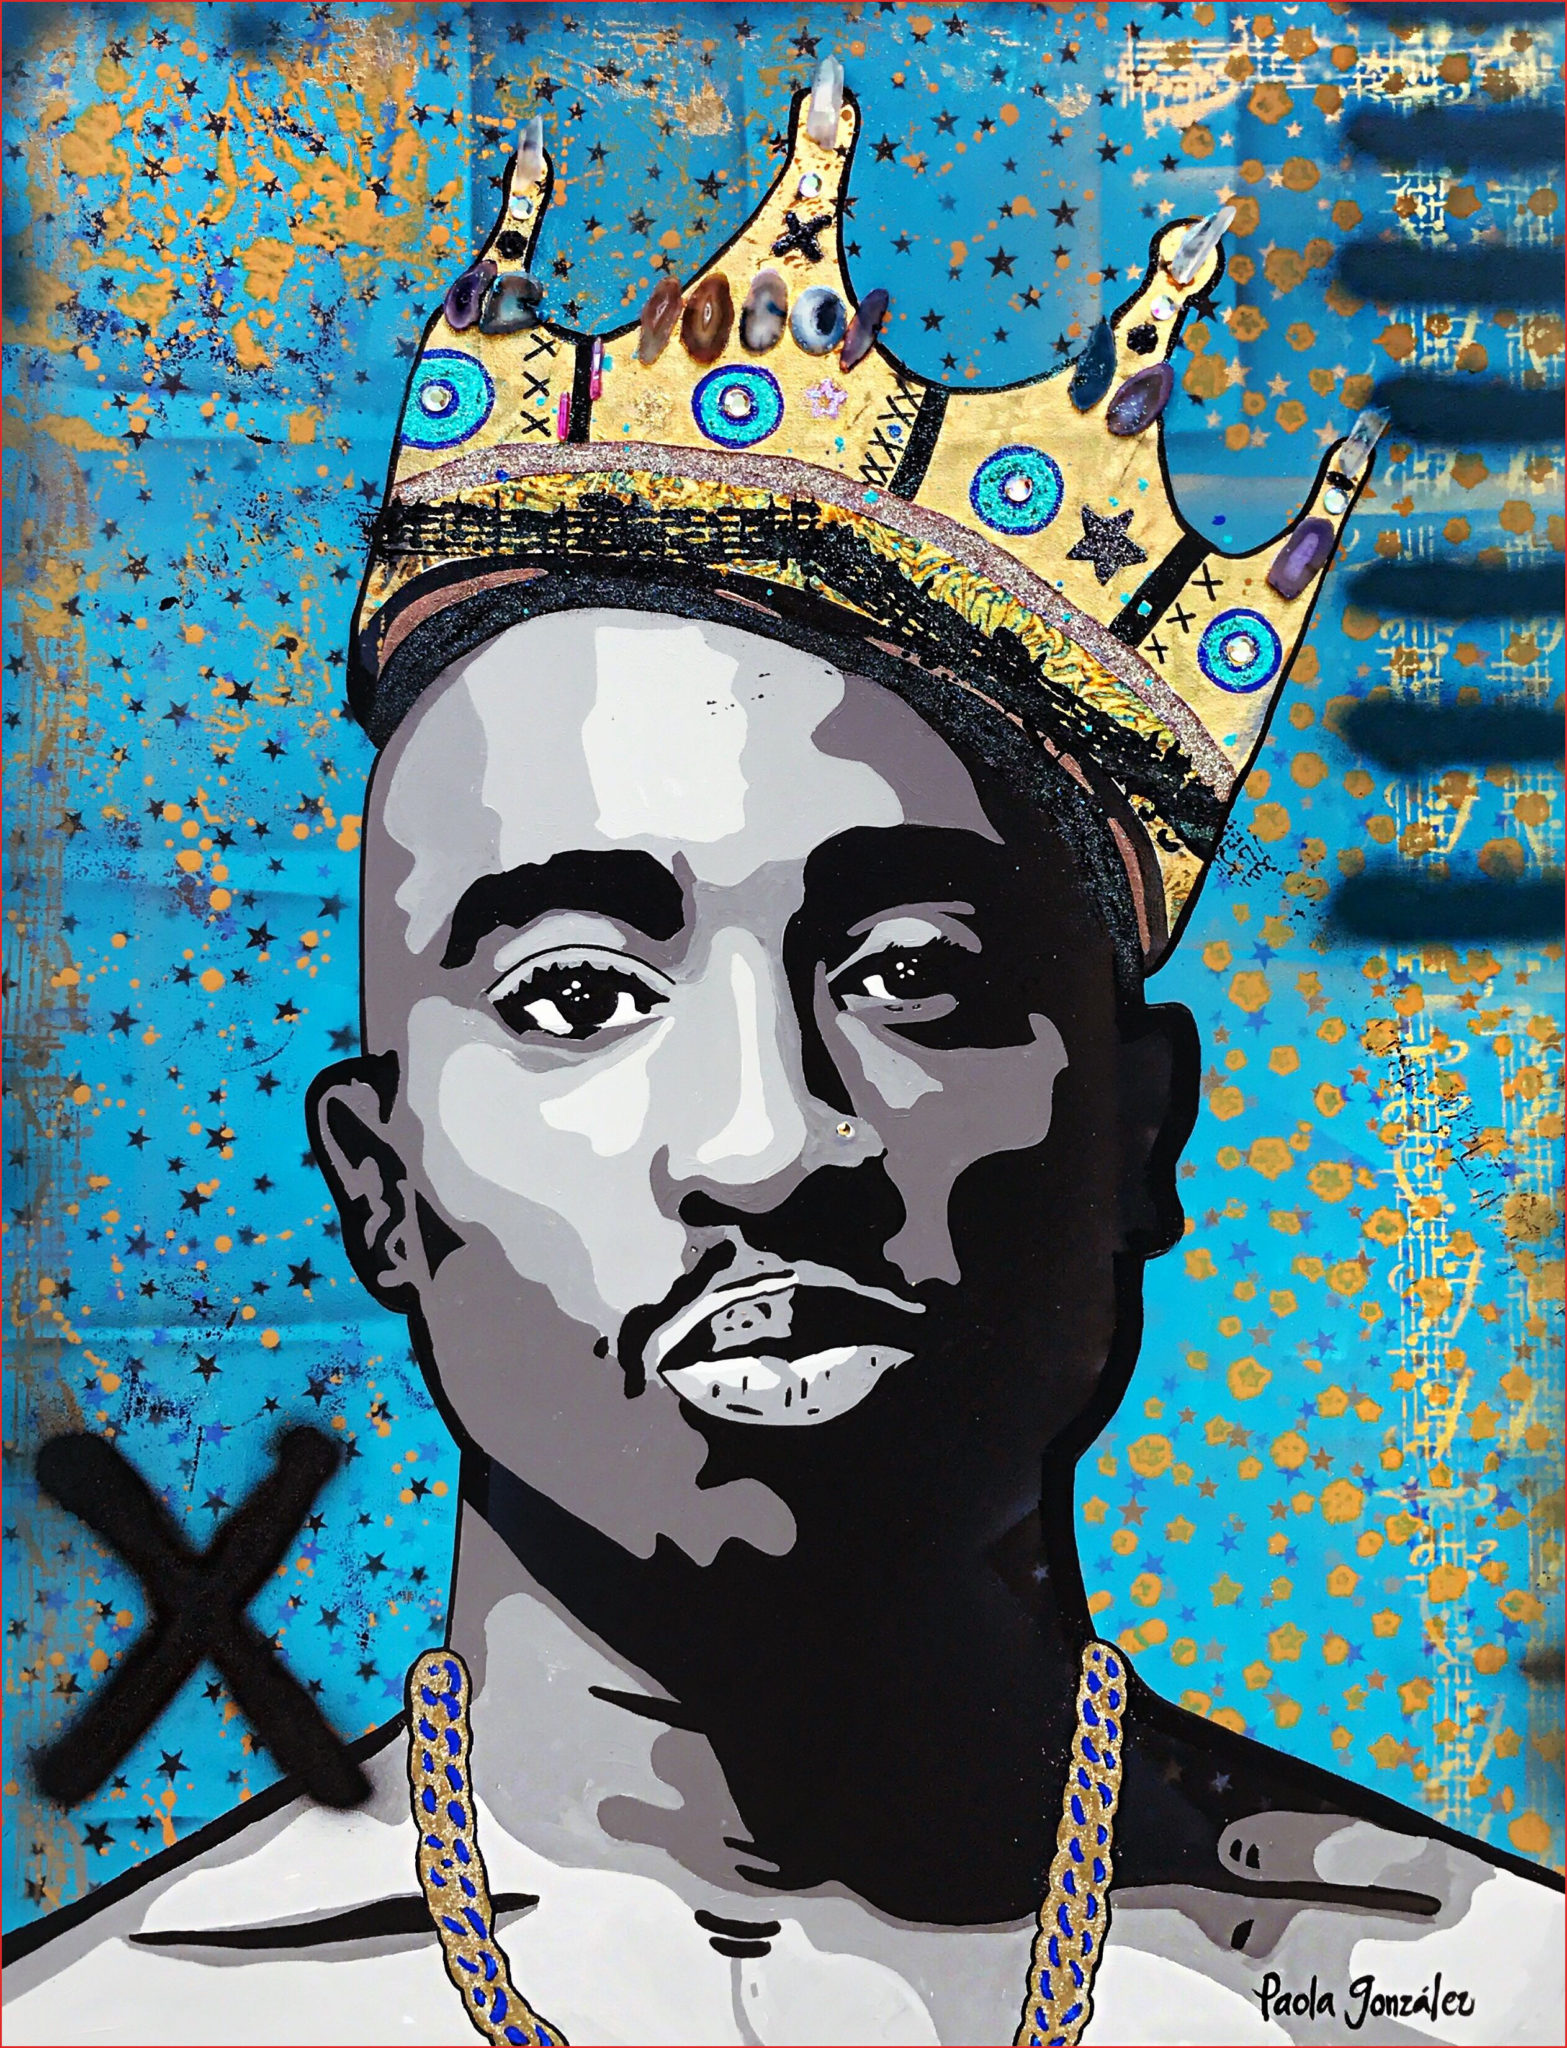 Tupac Drawing 158934 Tupac 2pac pop art icons art painting by Paola Gonzalez